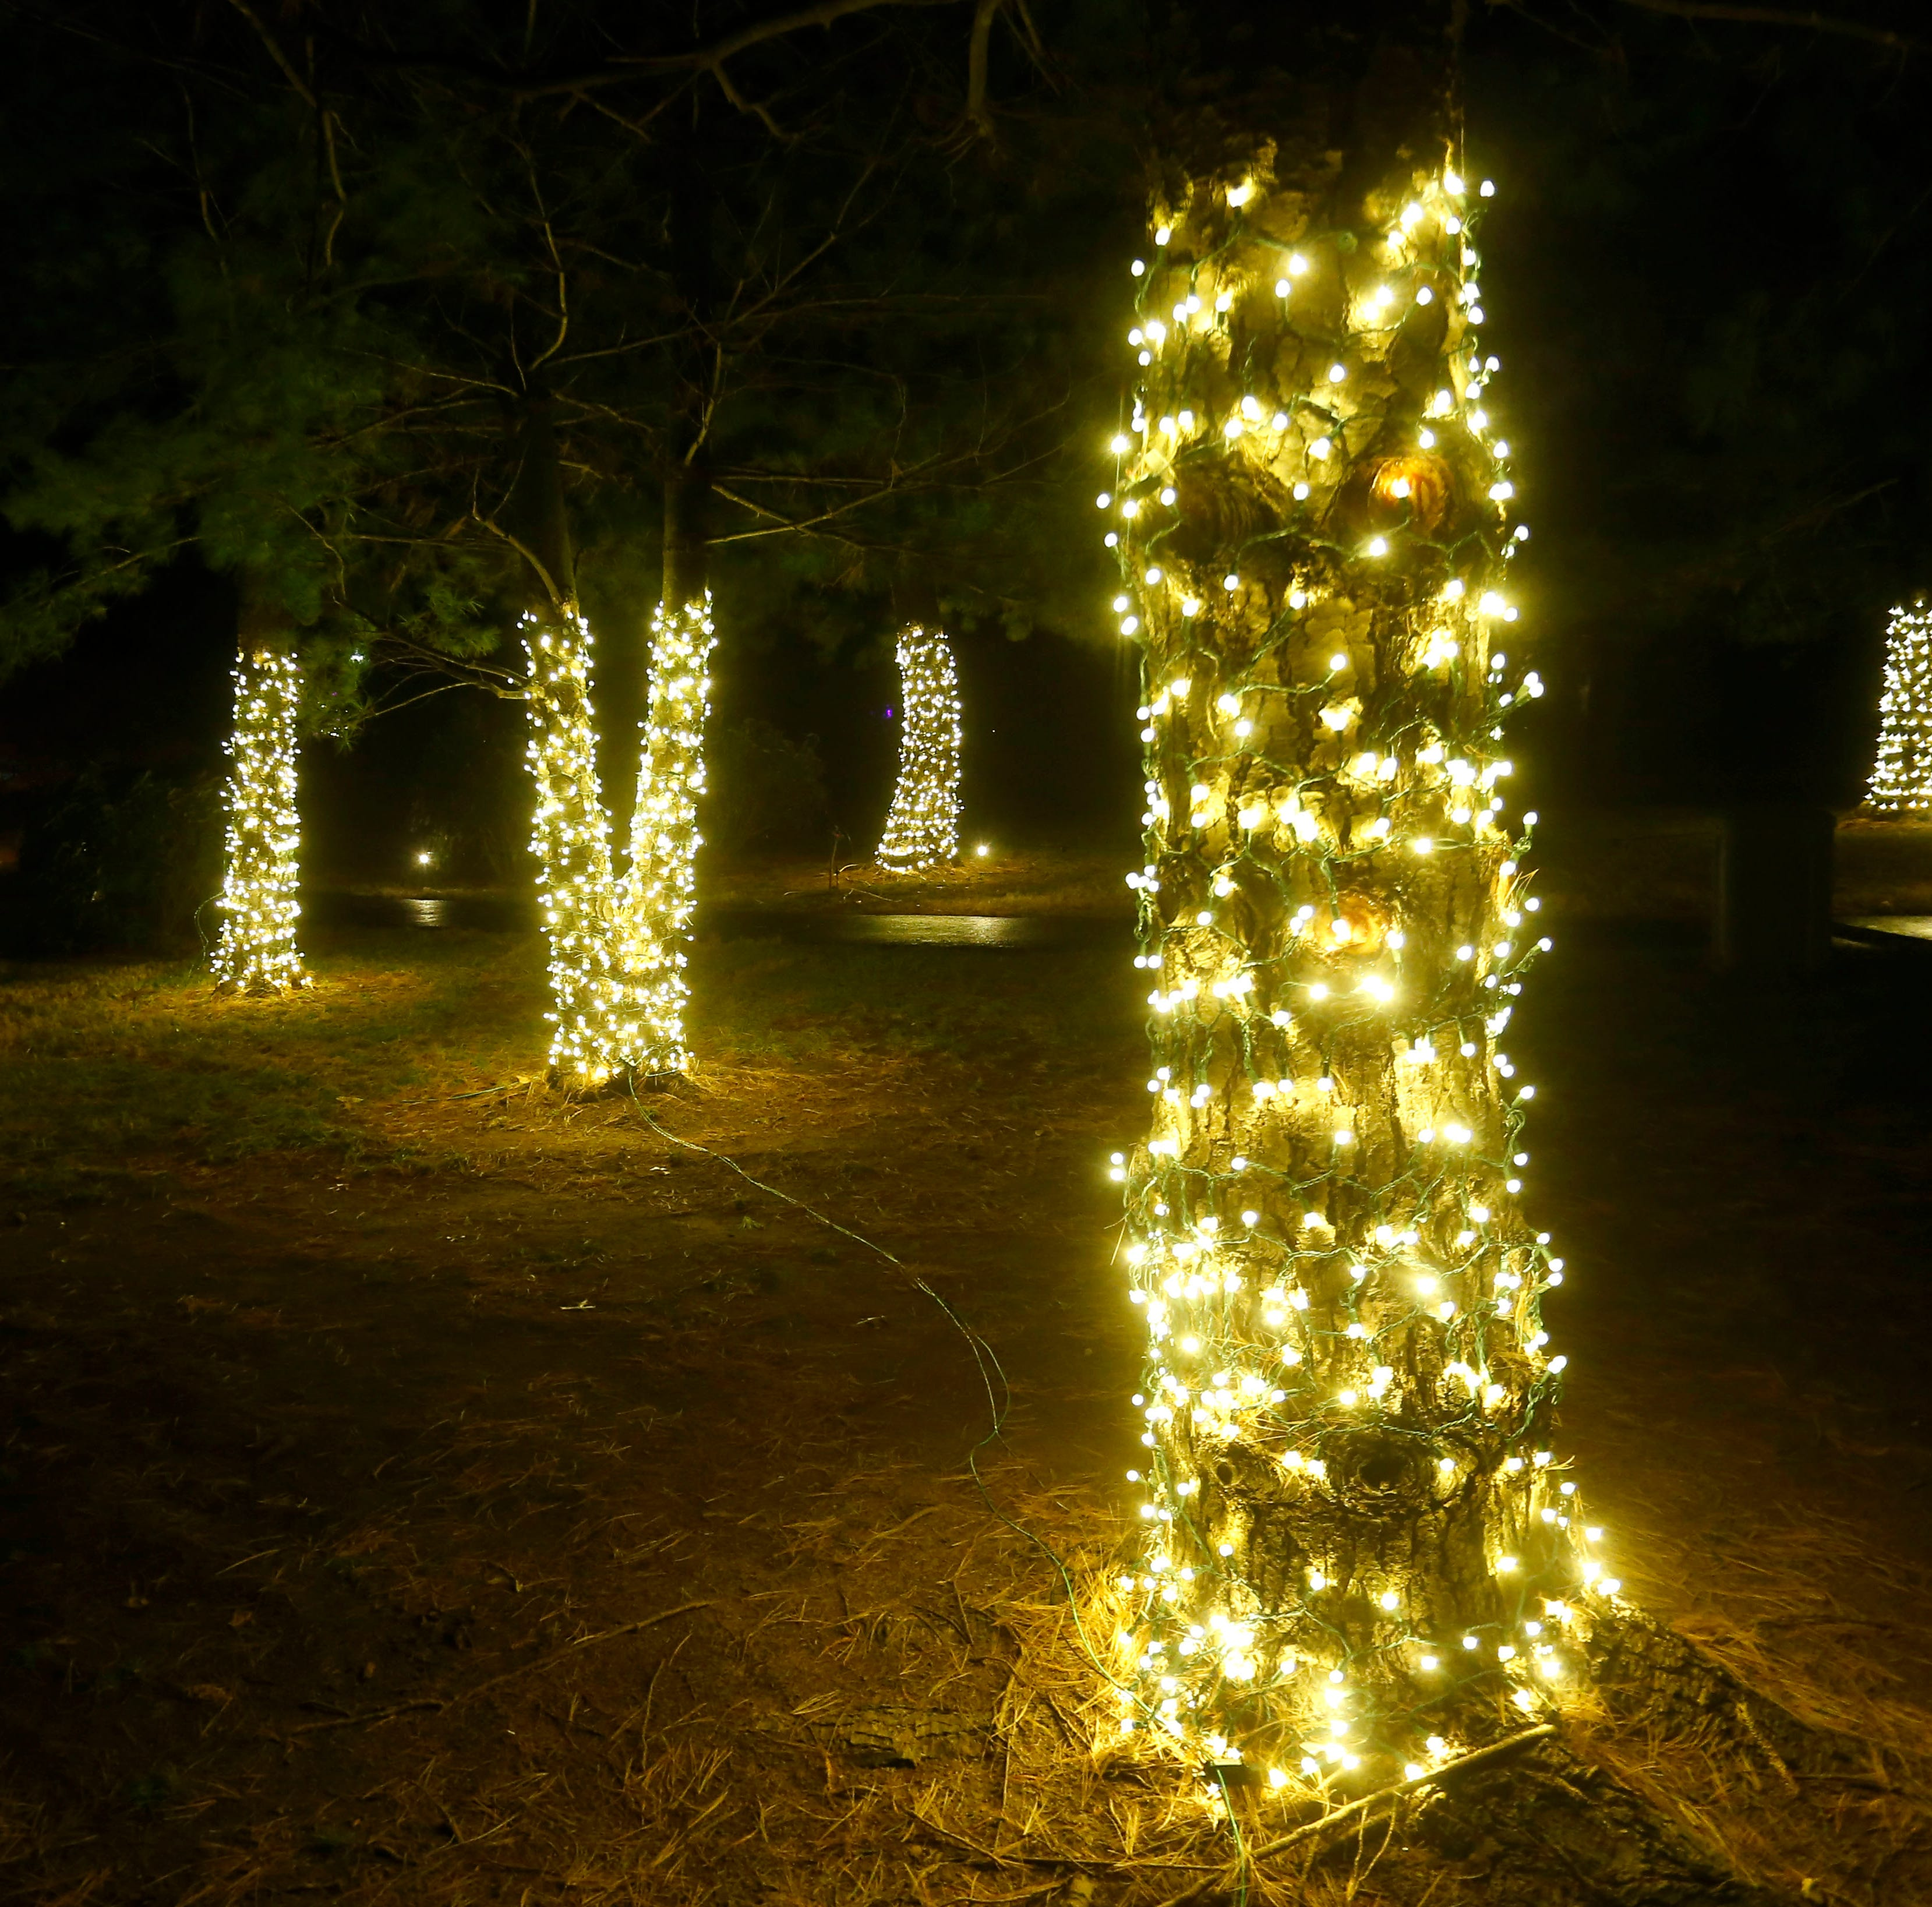 See the Japanese stroll garden at night, with new lights